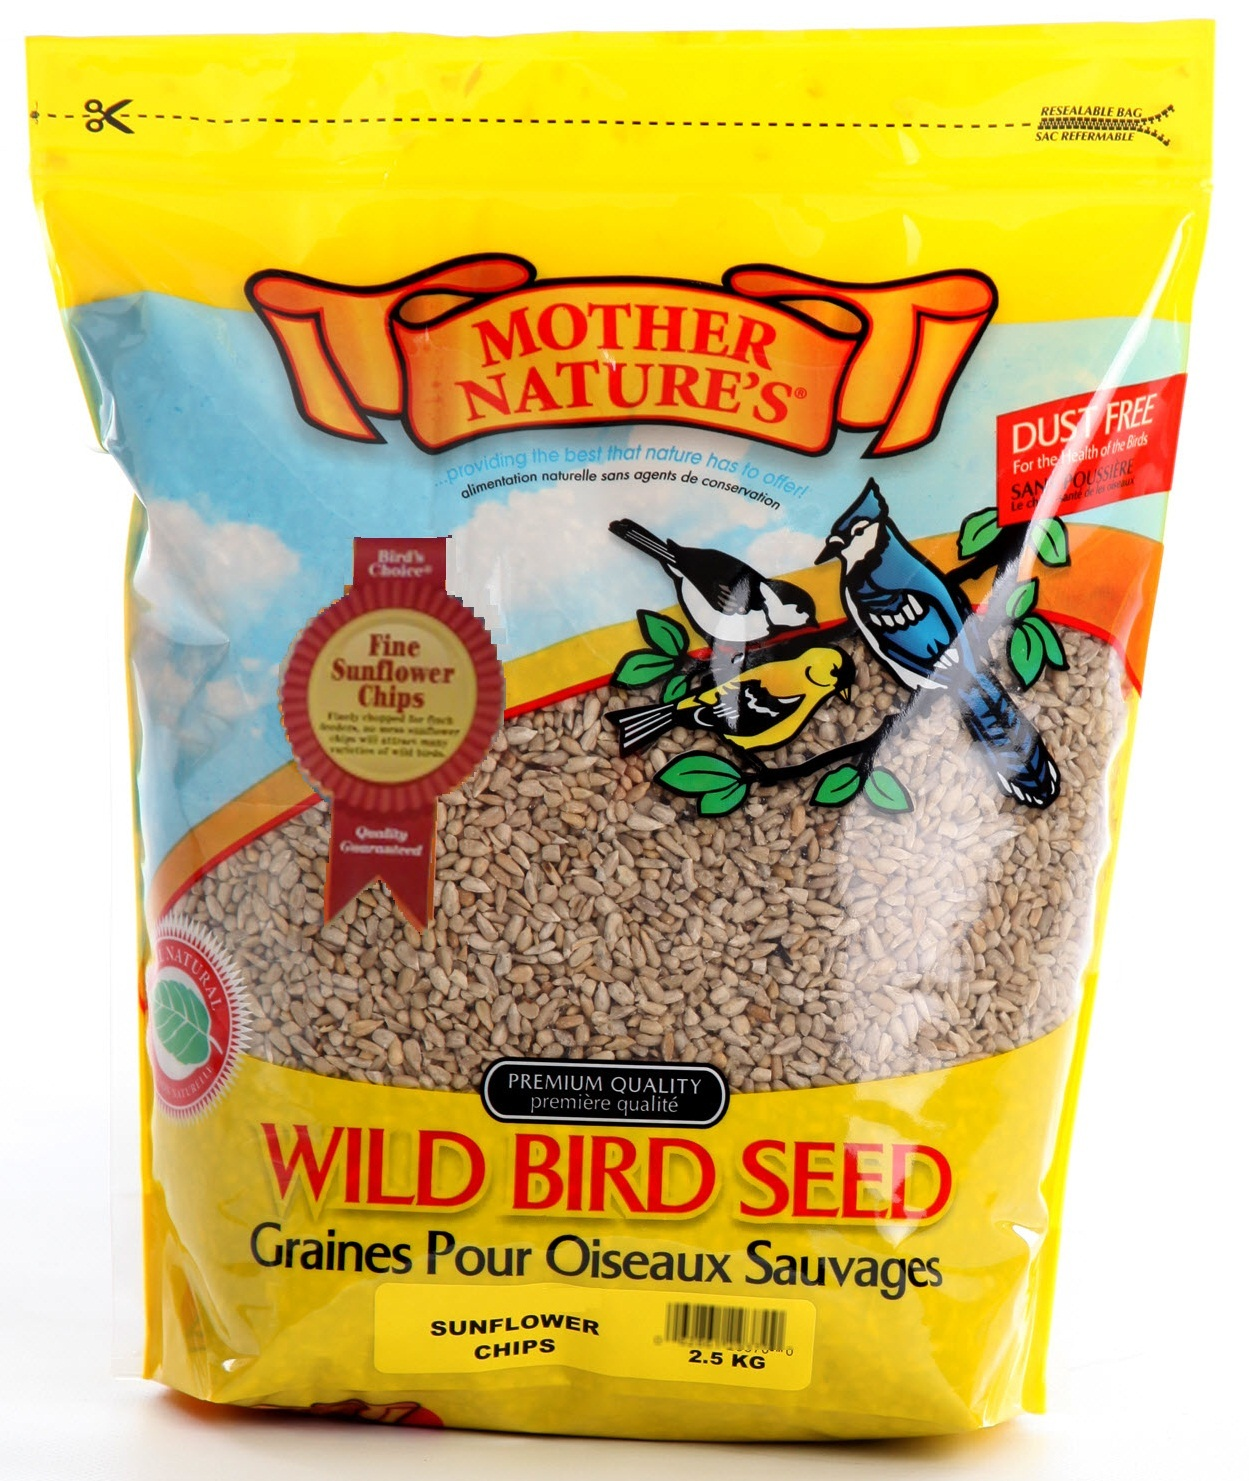 Mother Nature's® Mother Nature's Fine Sunflower Chips